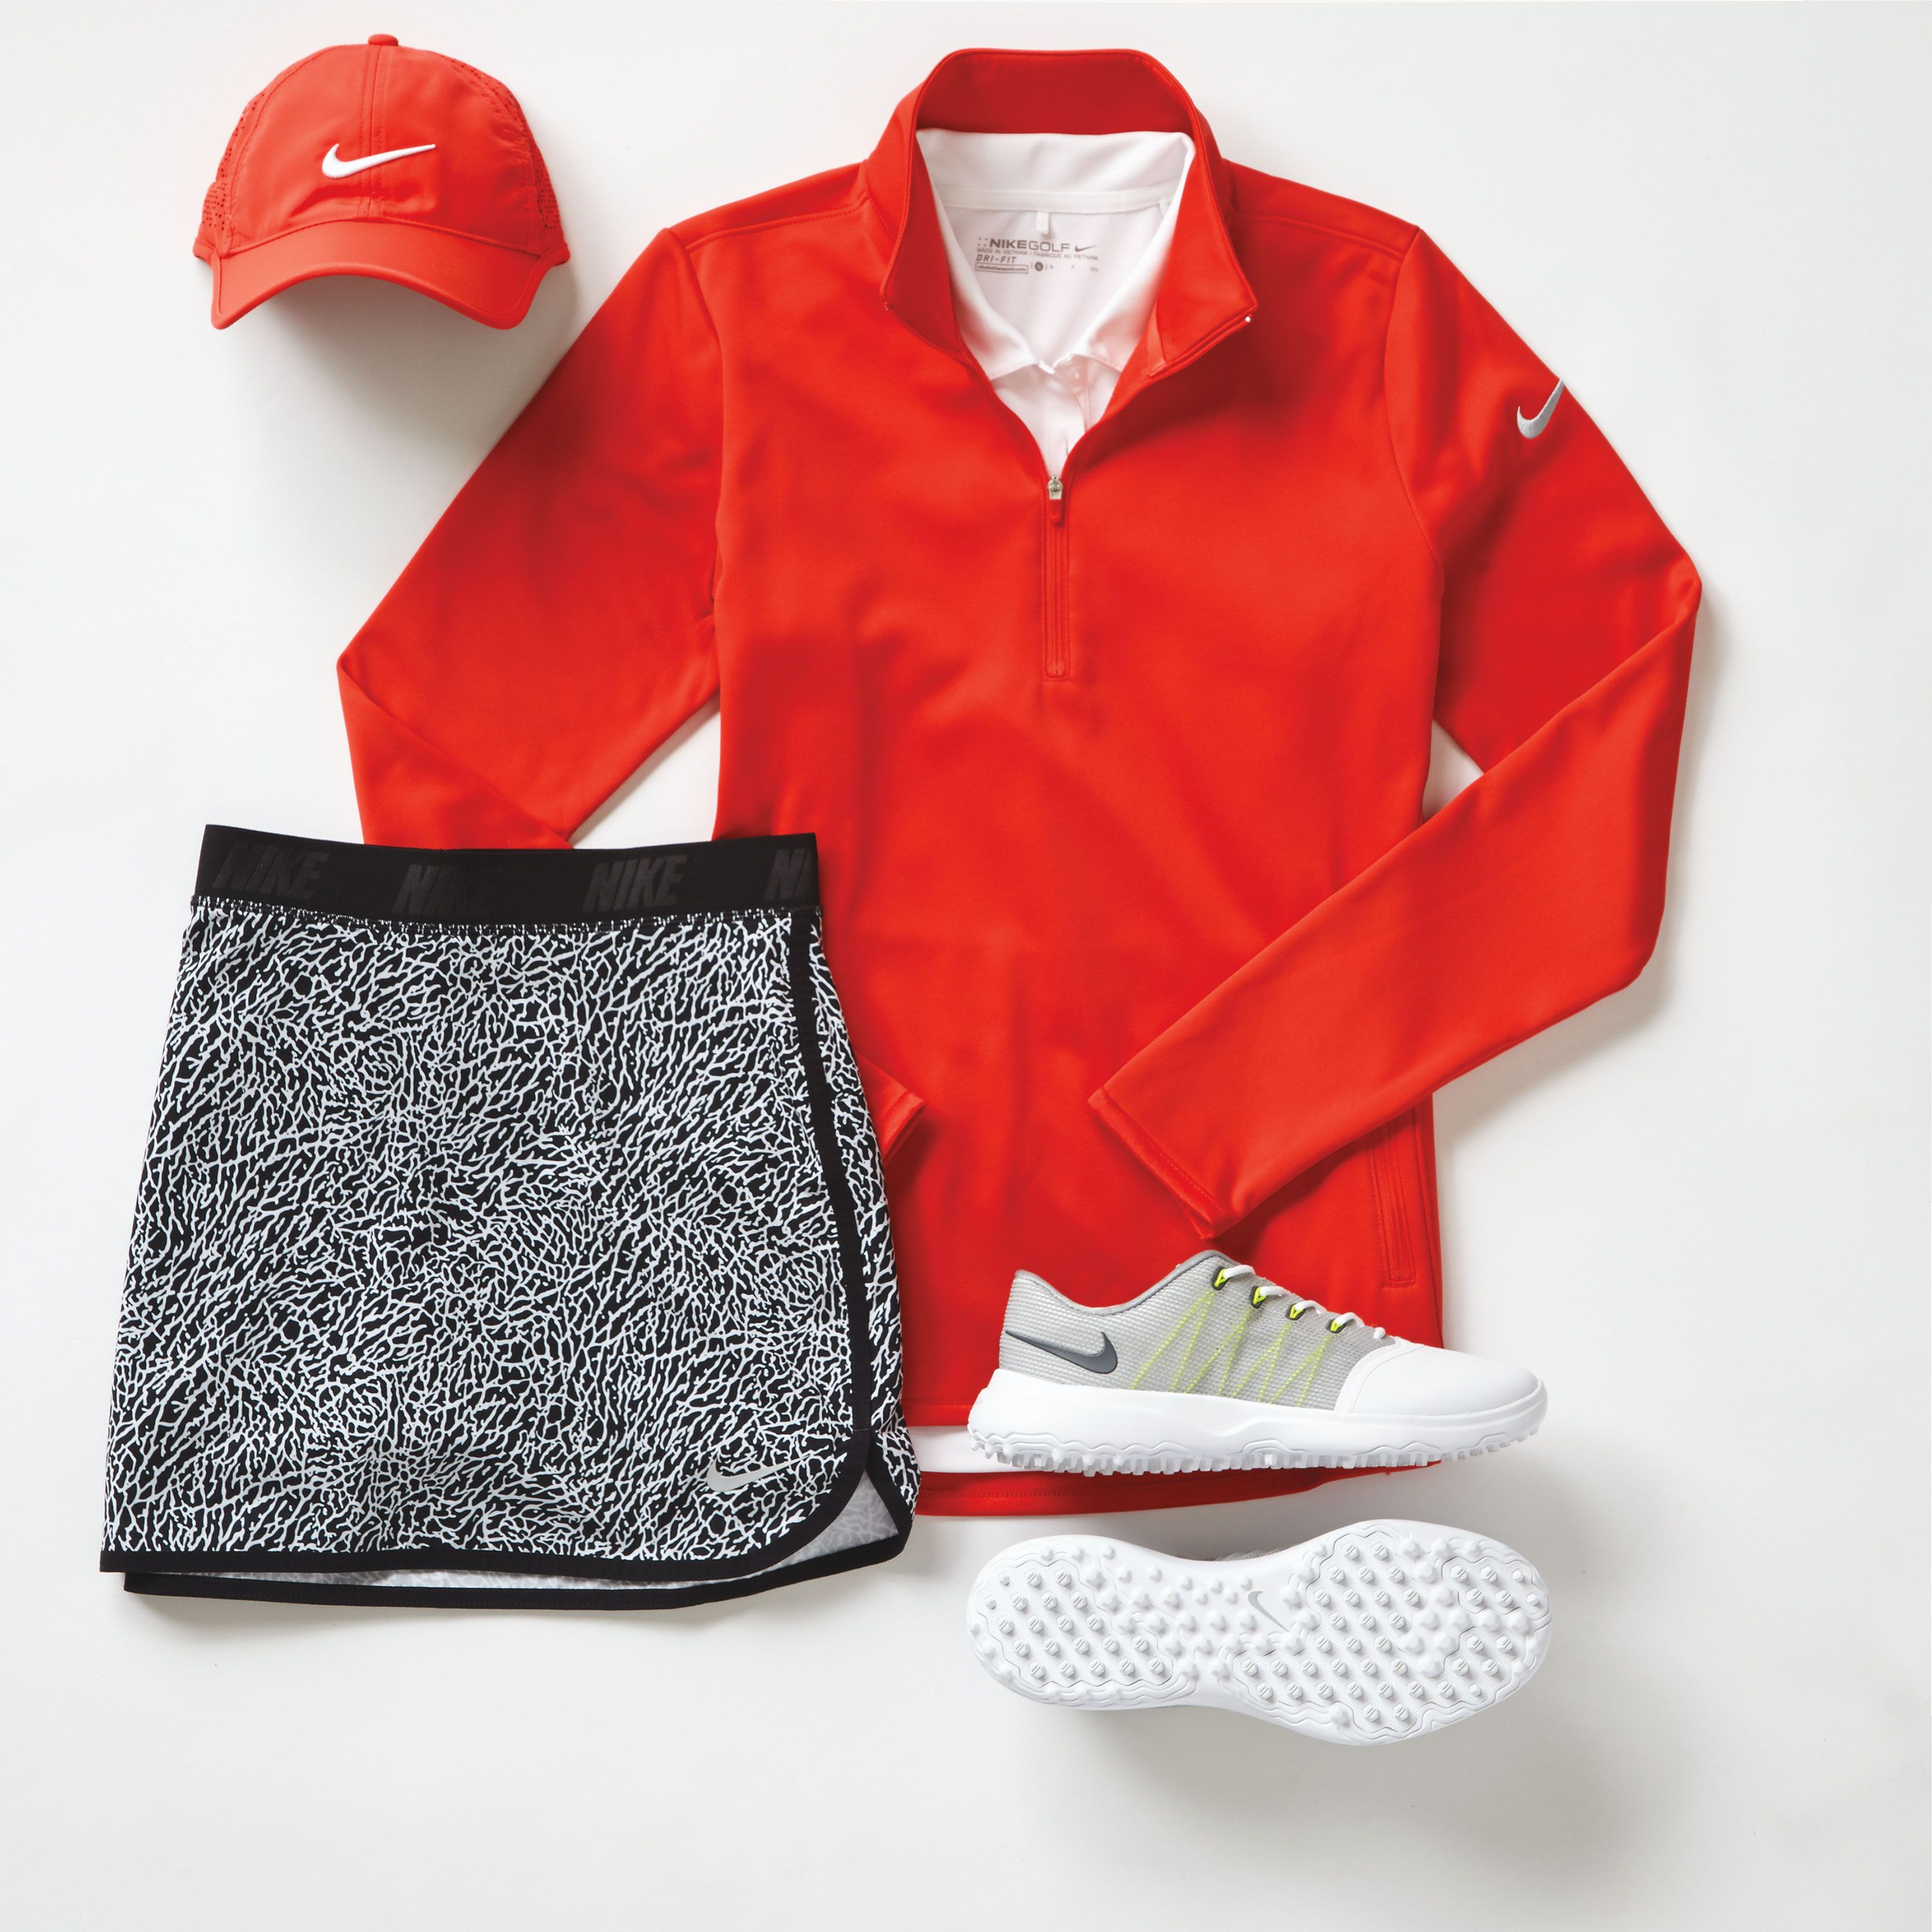 Things to Consider When Buying a Girl Golf Outfit